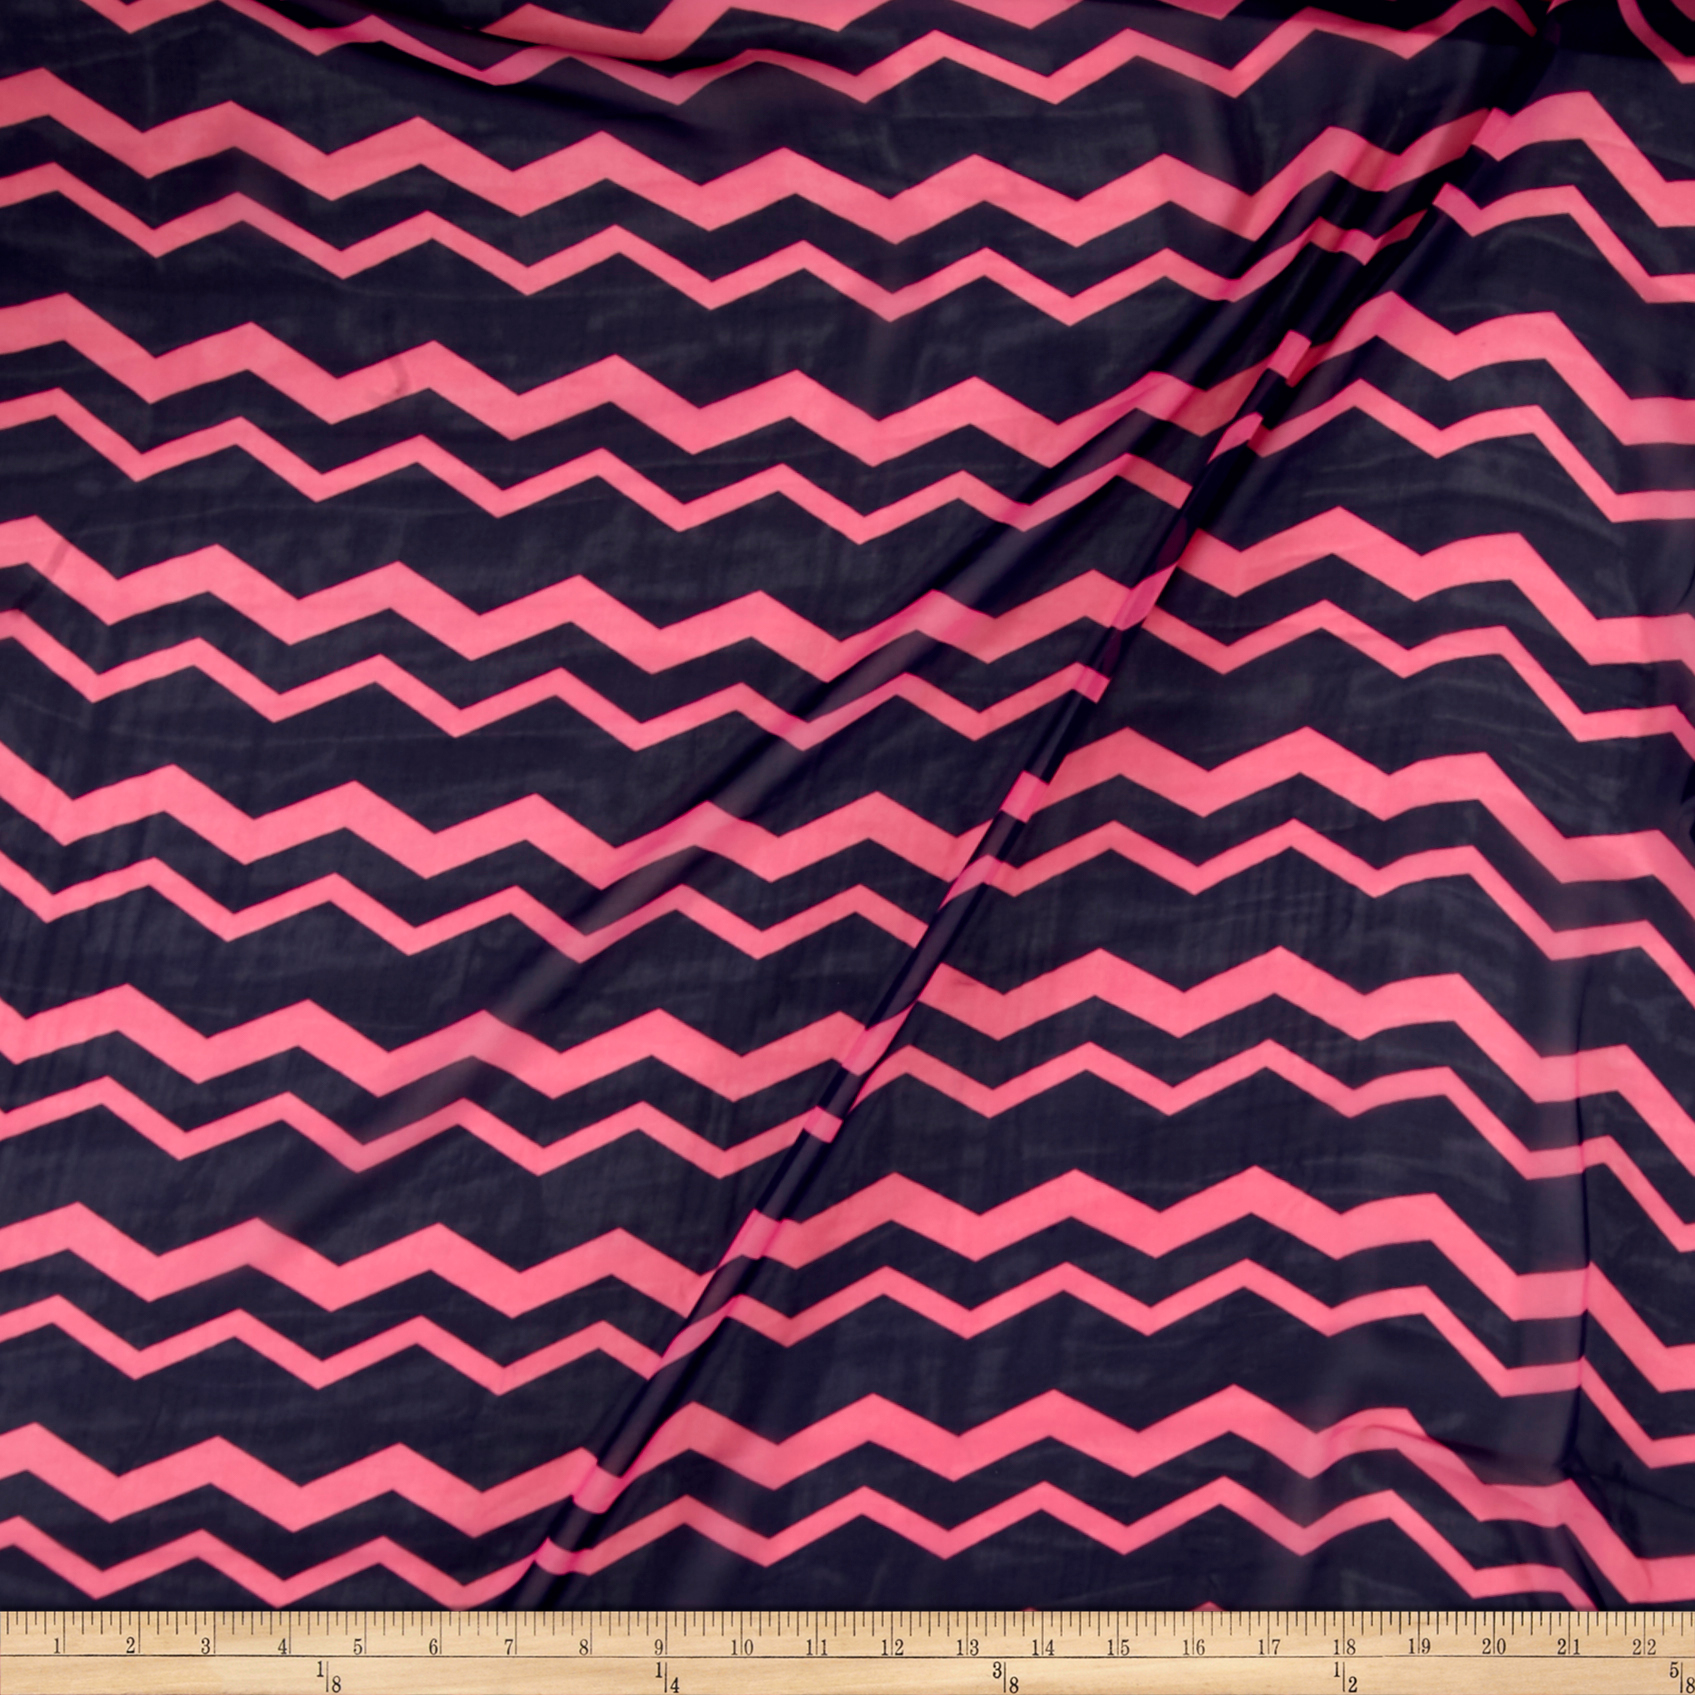 Polyester Prints Chiffon Chevron Pink/Navy Fabric